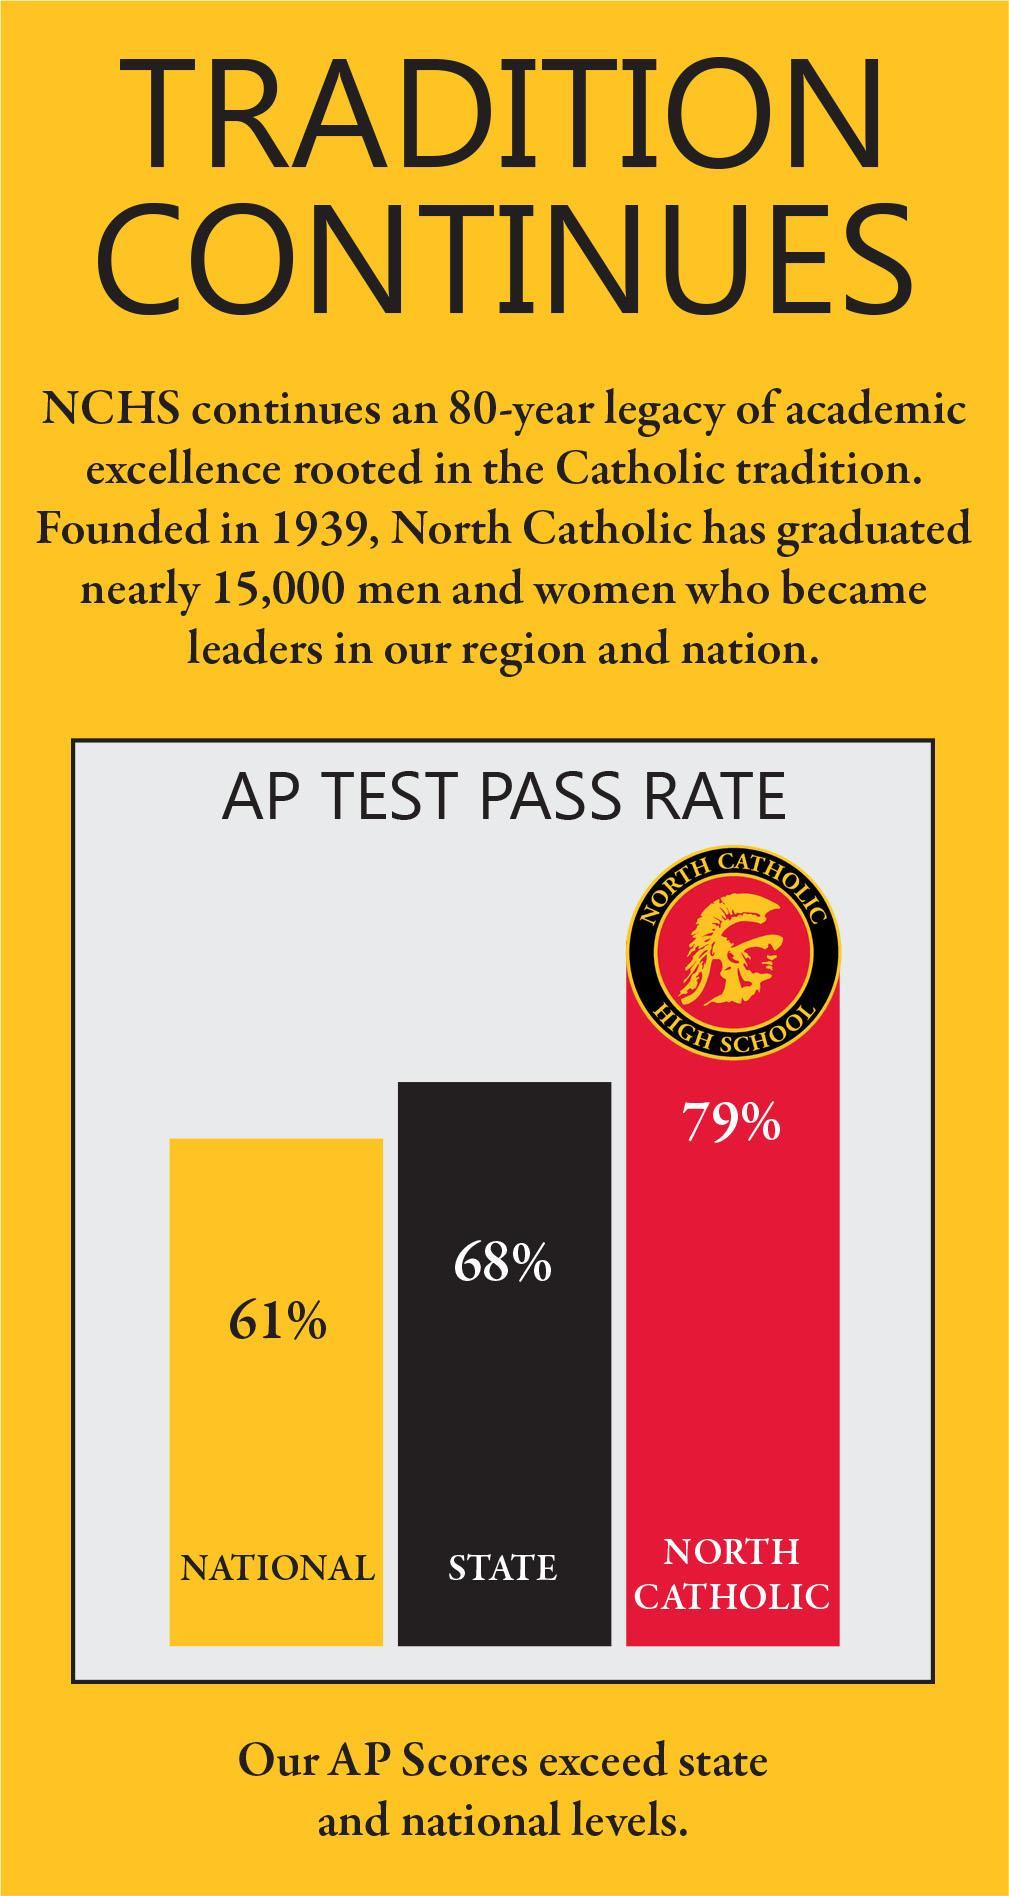 AP Pass Rate